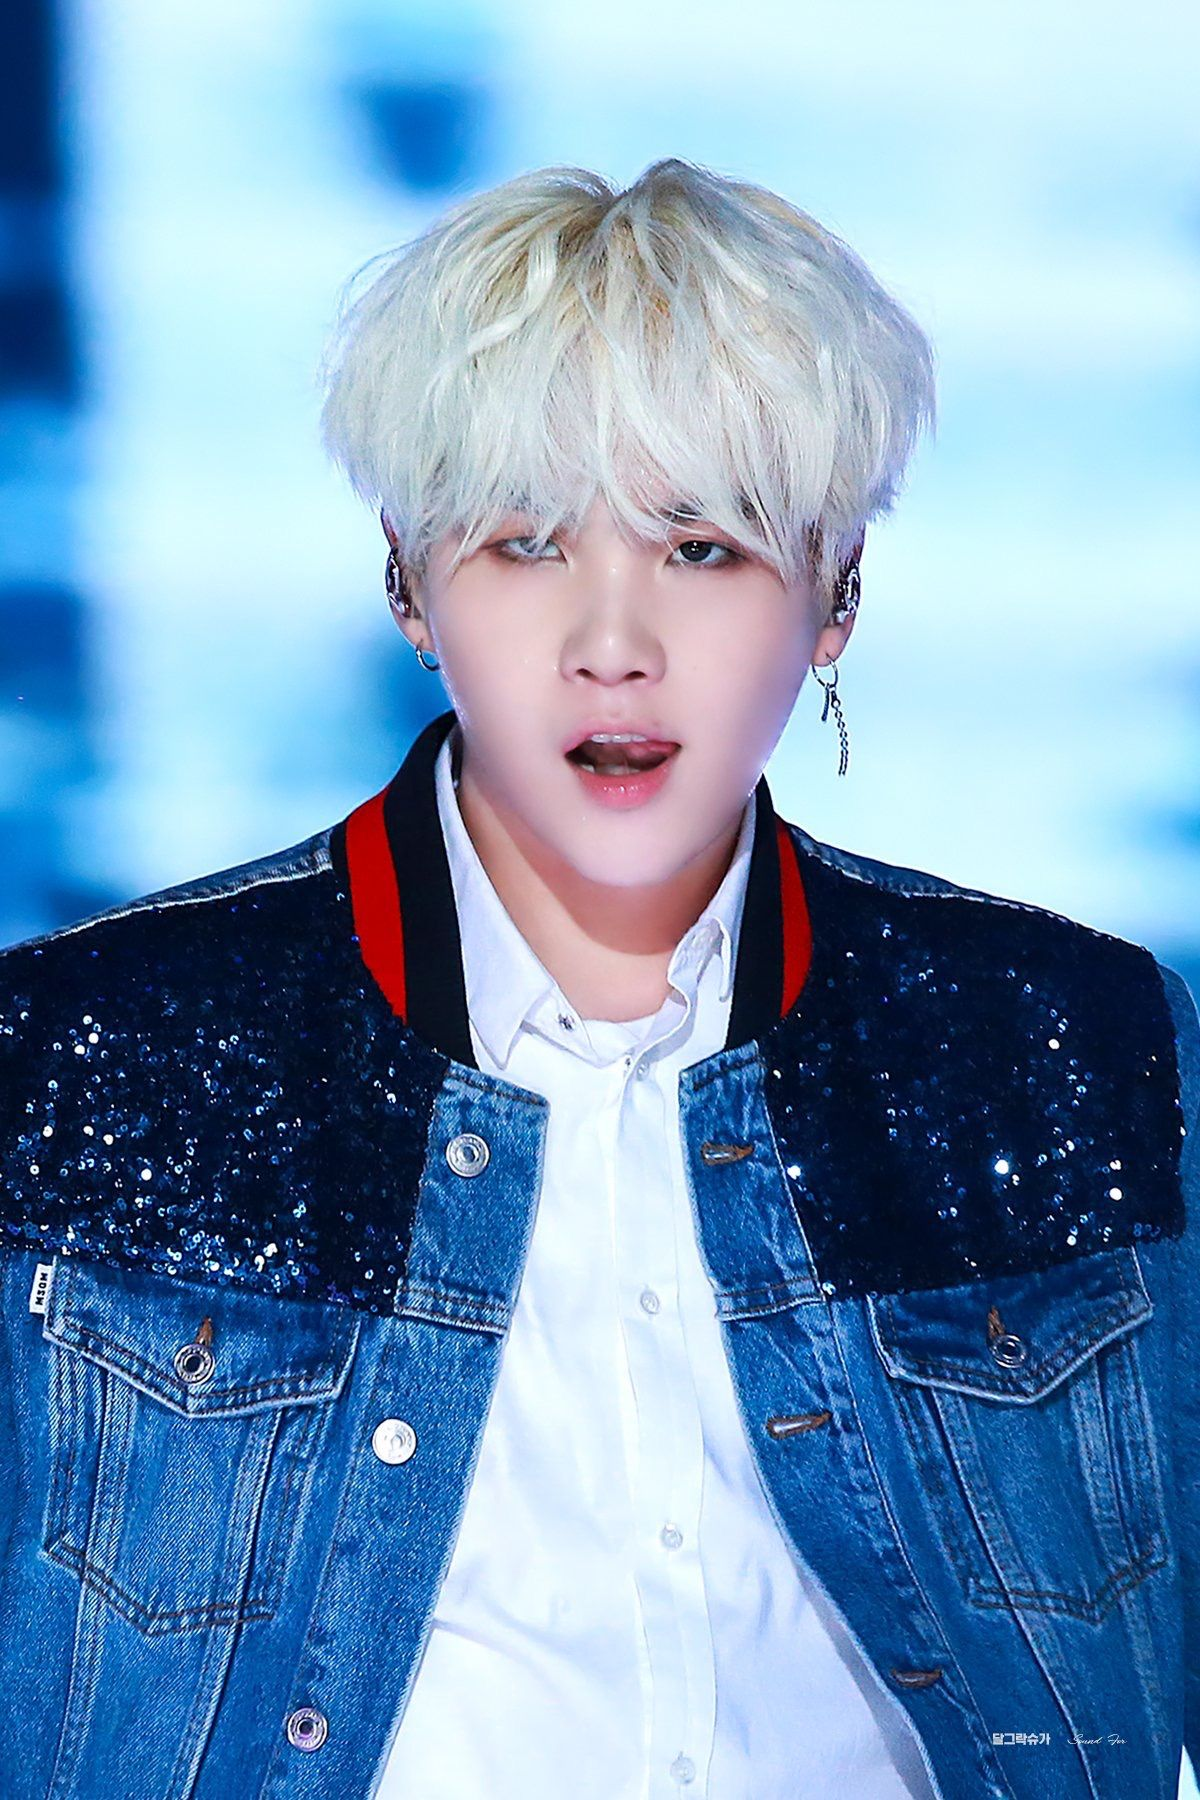 Pin By Bts ️💚🌈☀️ On Suga ️ Pinterest Bts Bts Suga